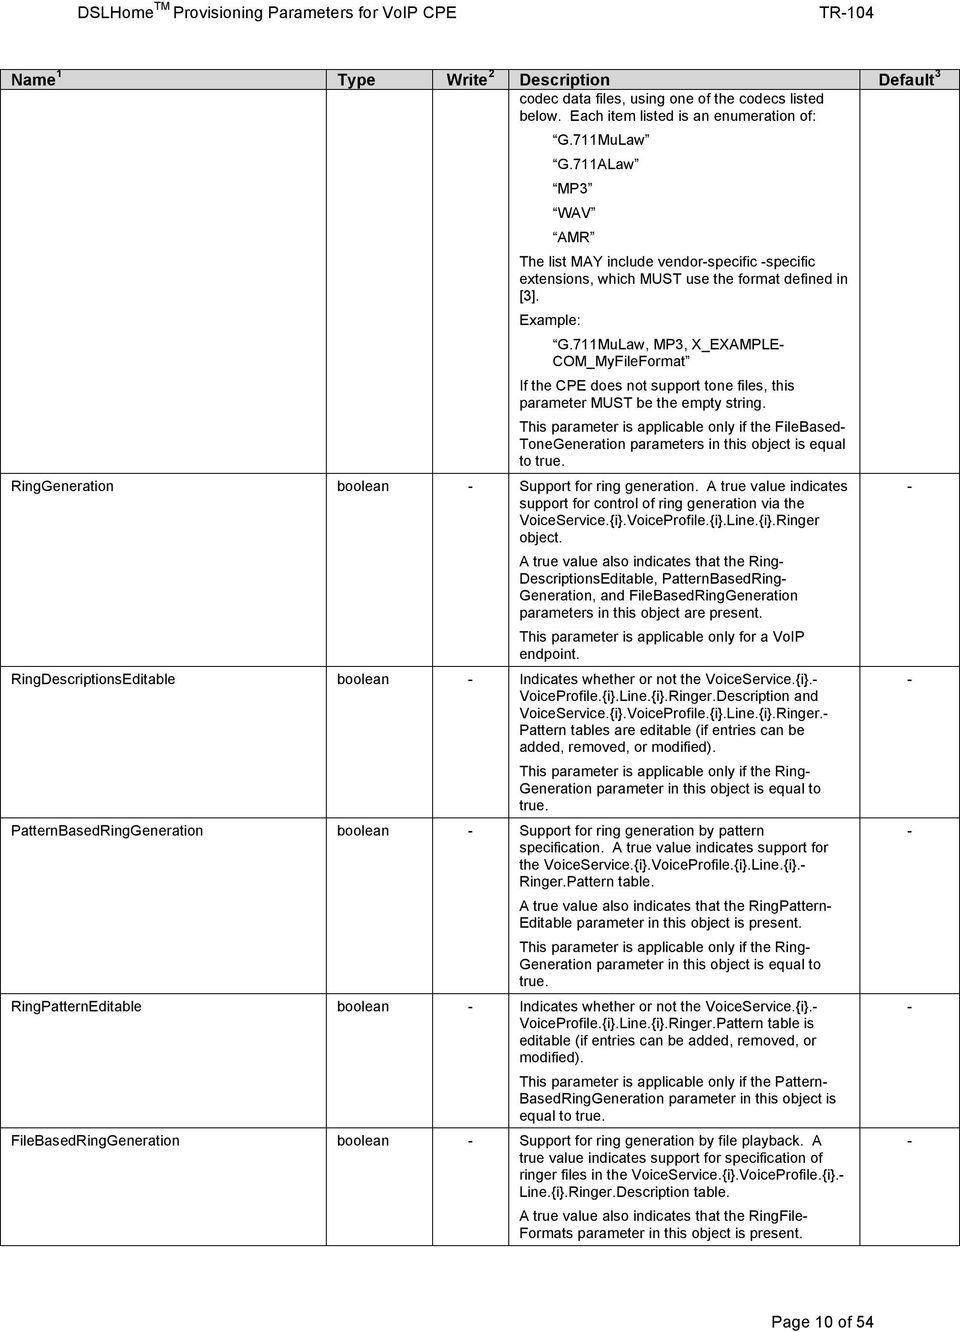 711MuLaw, MP3, X_EXAMPLE COM_MyFileFormat If the CPE does not support tone files, this parameter MUST be the empty string.